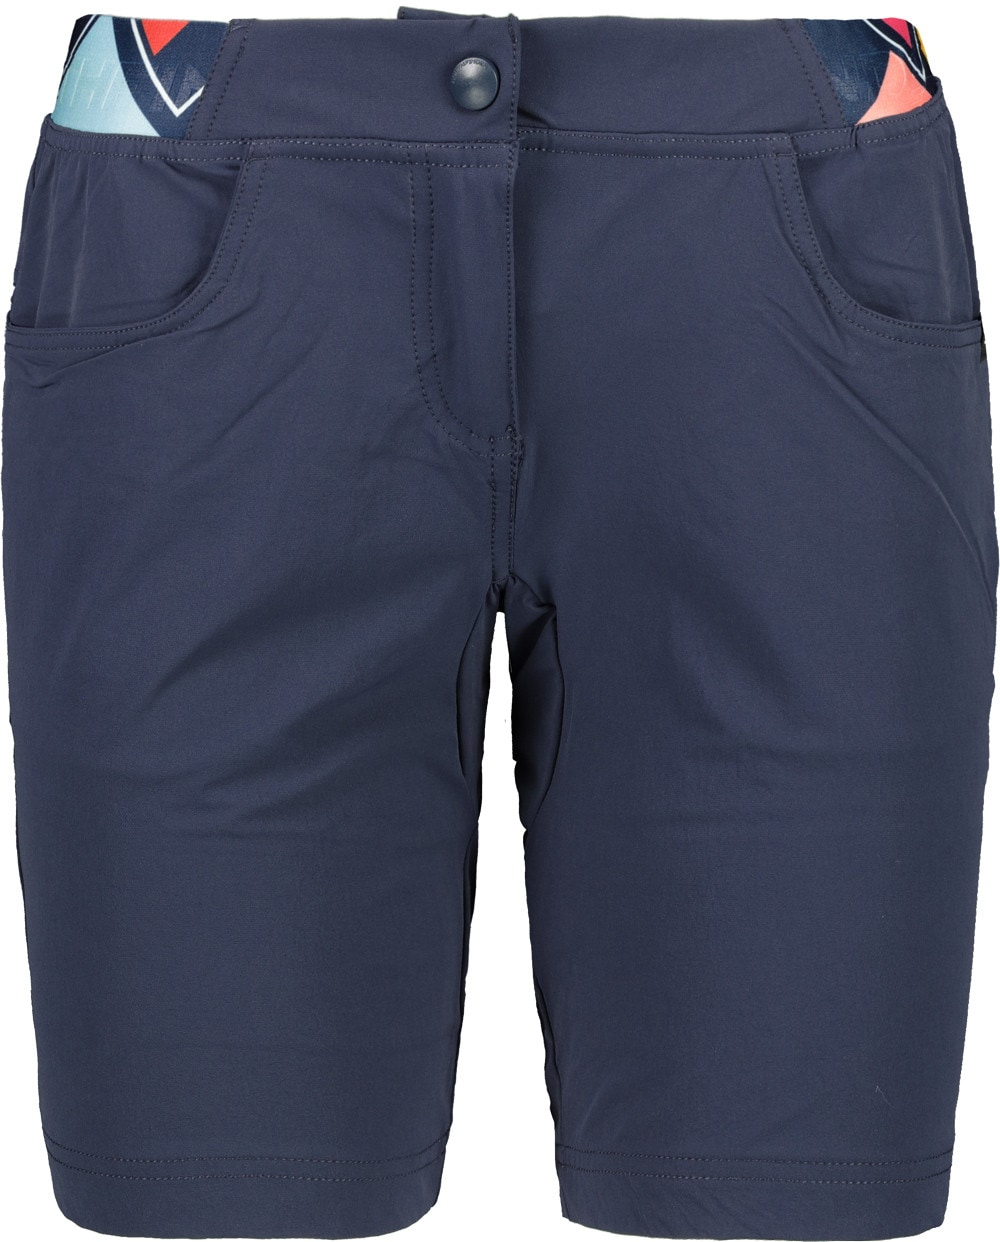 Women's shorts NORTHFINDER LOJTHA